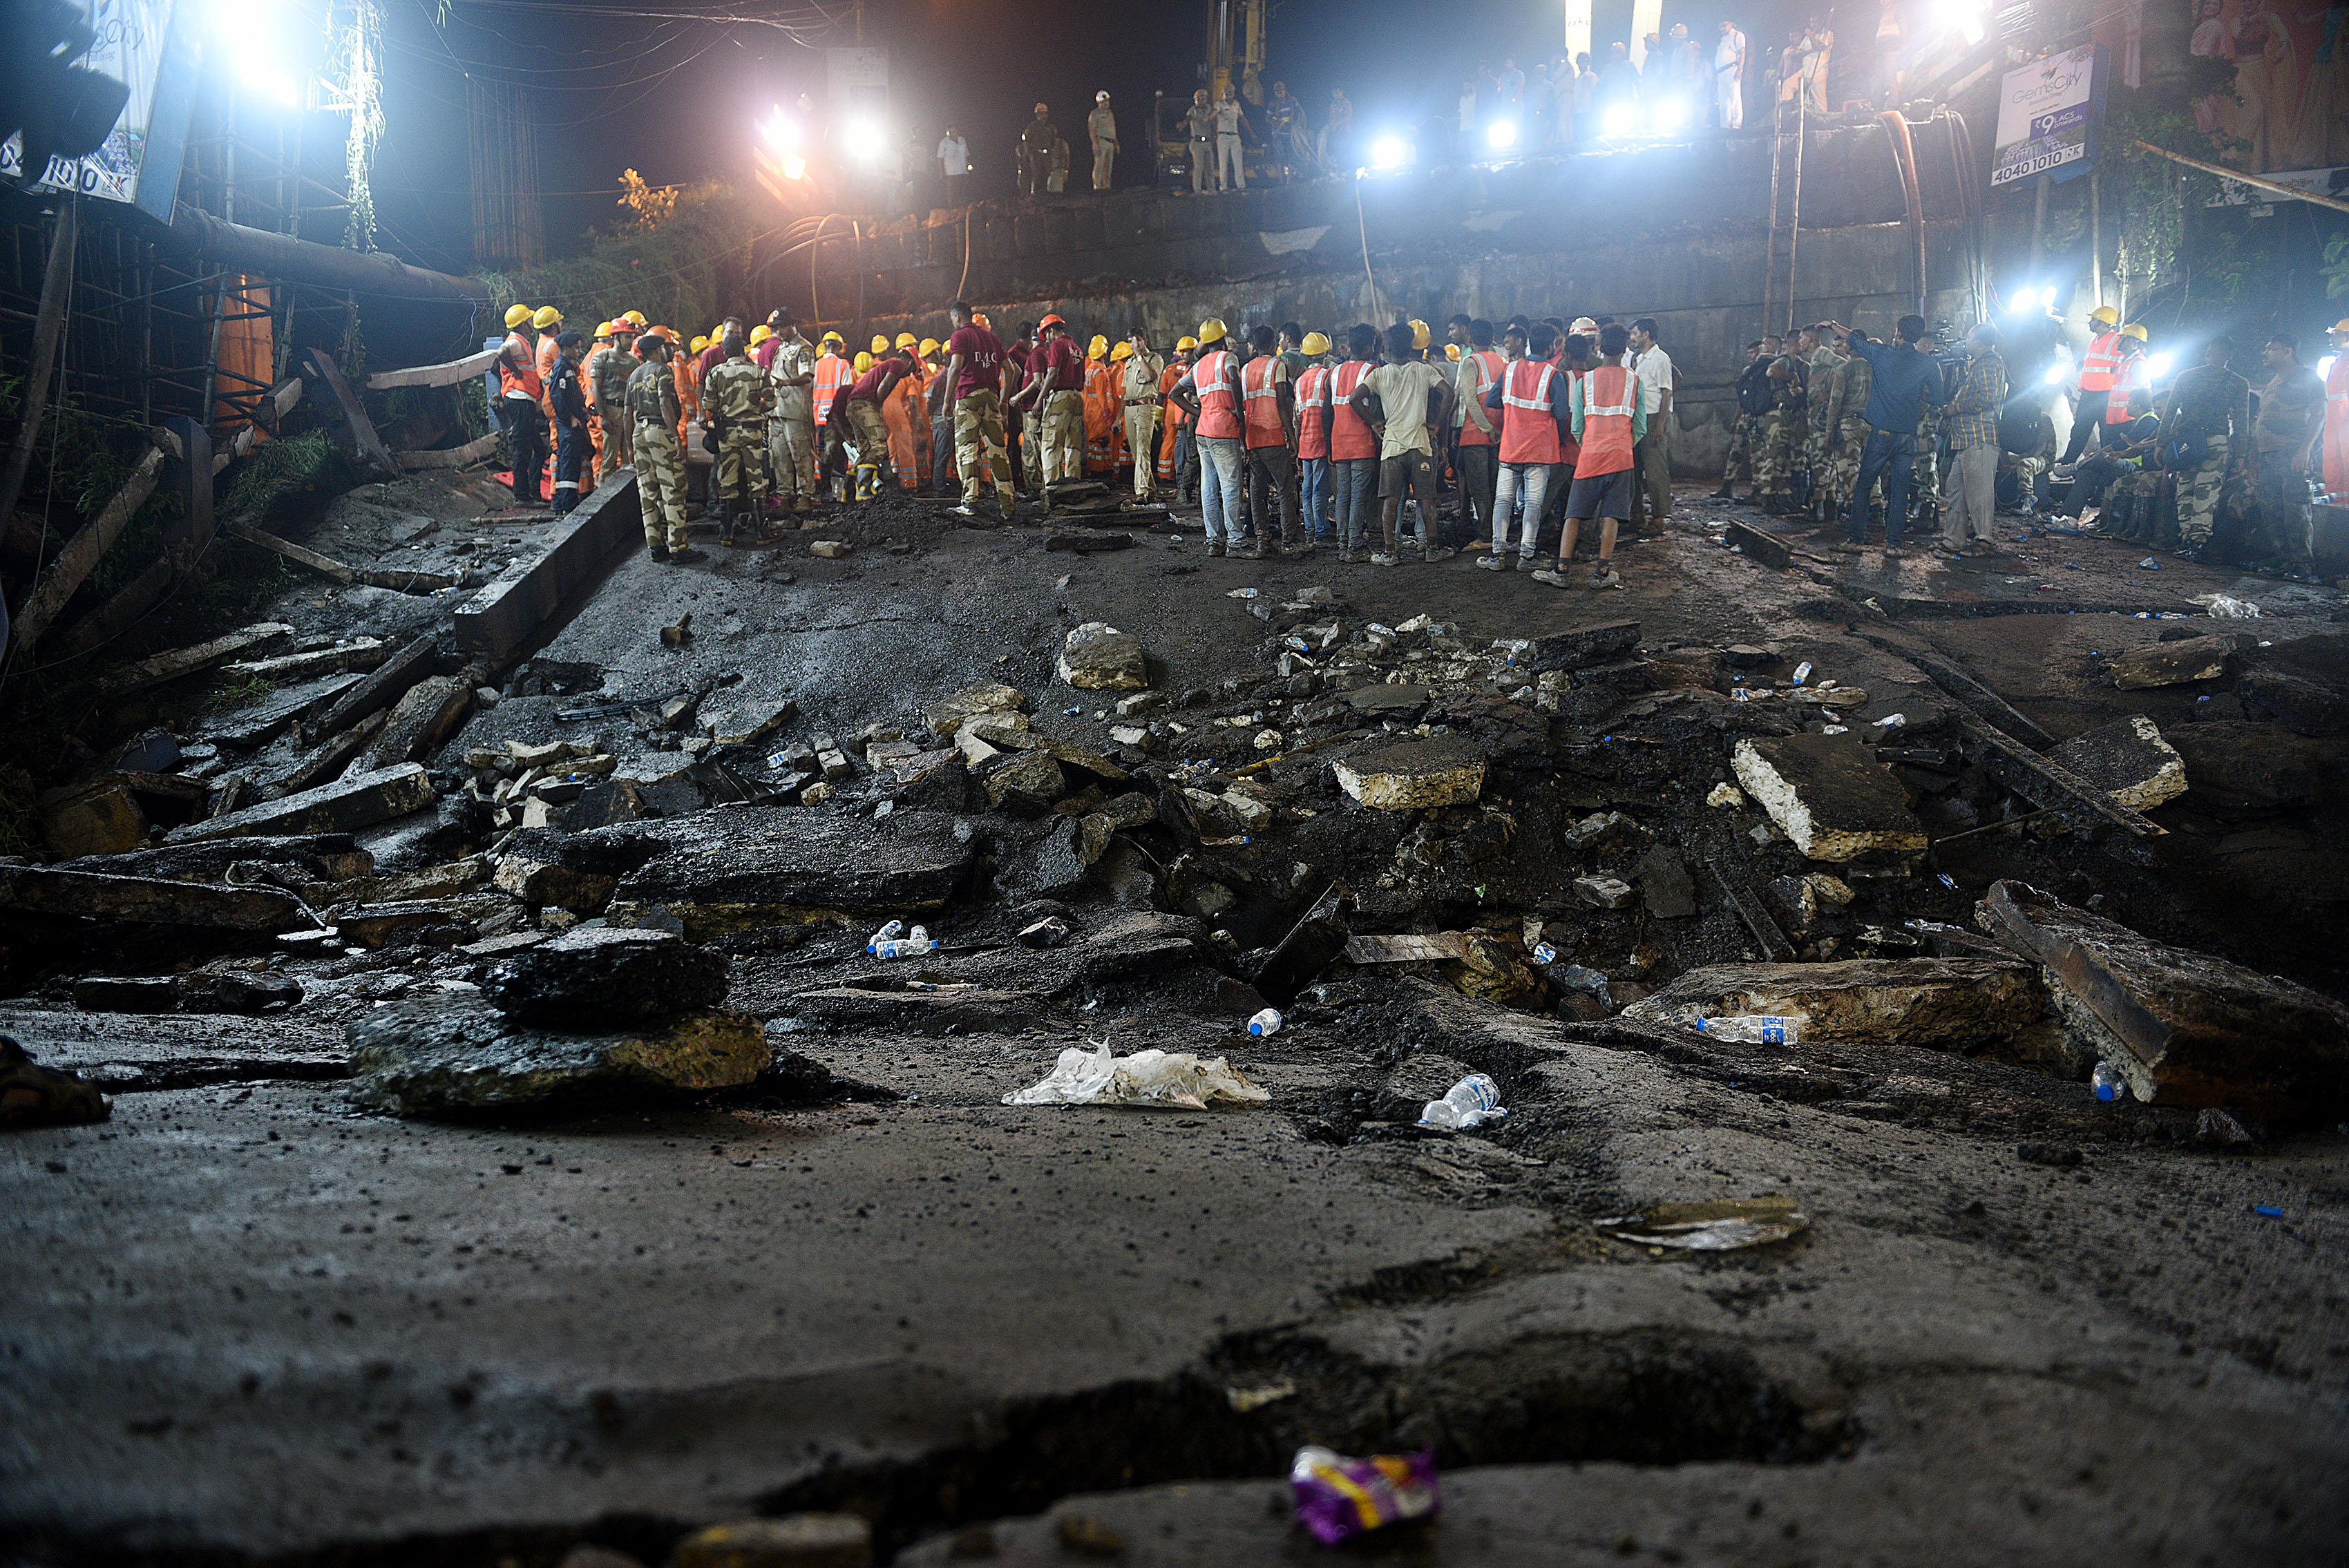 Rescue operation after the Majerhat bridge collapse in Calcutta earlier this month